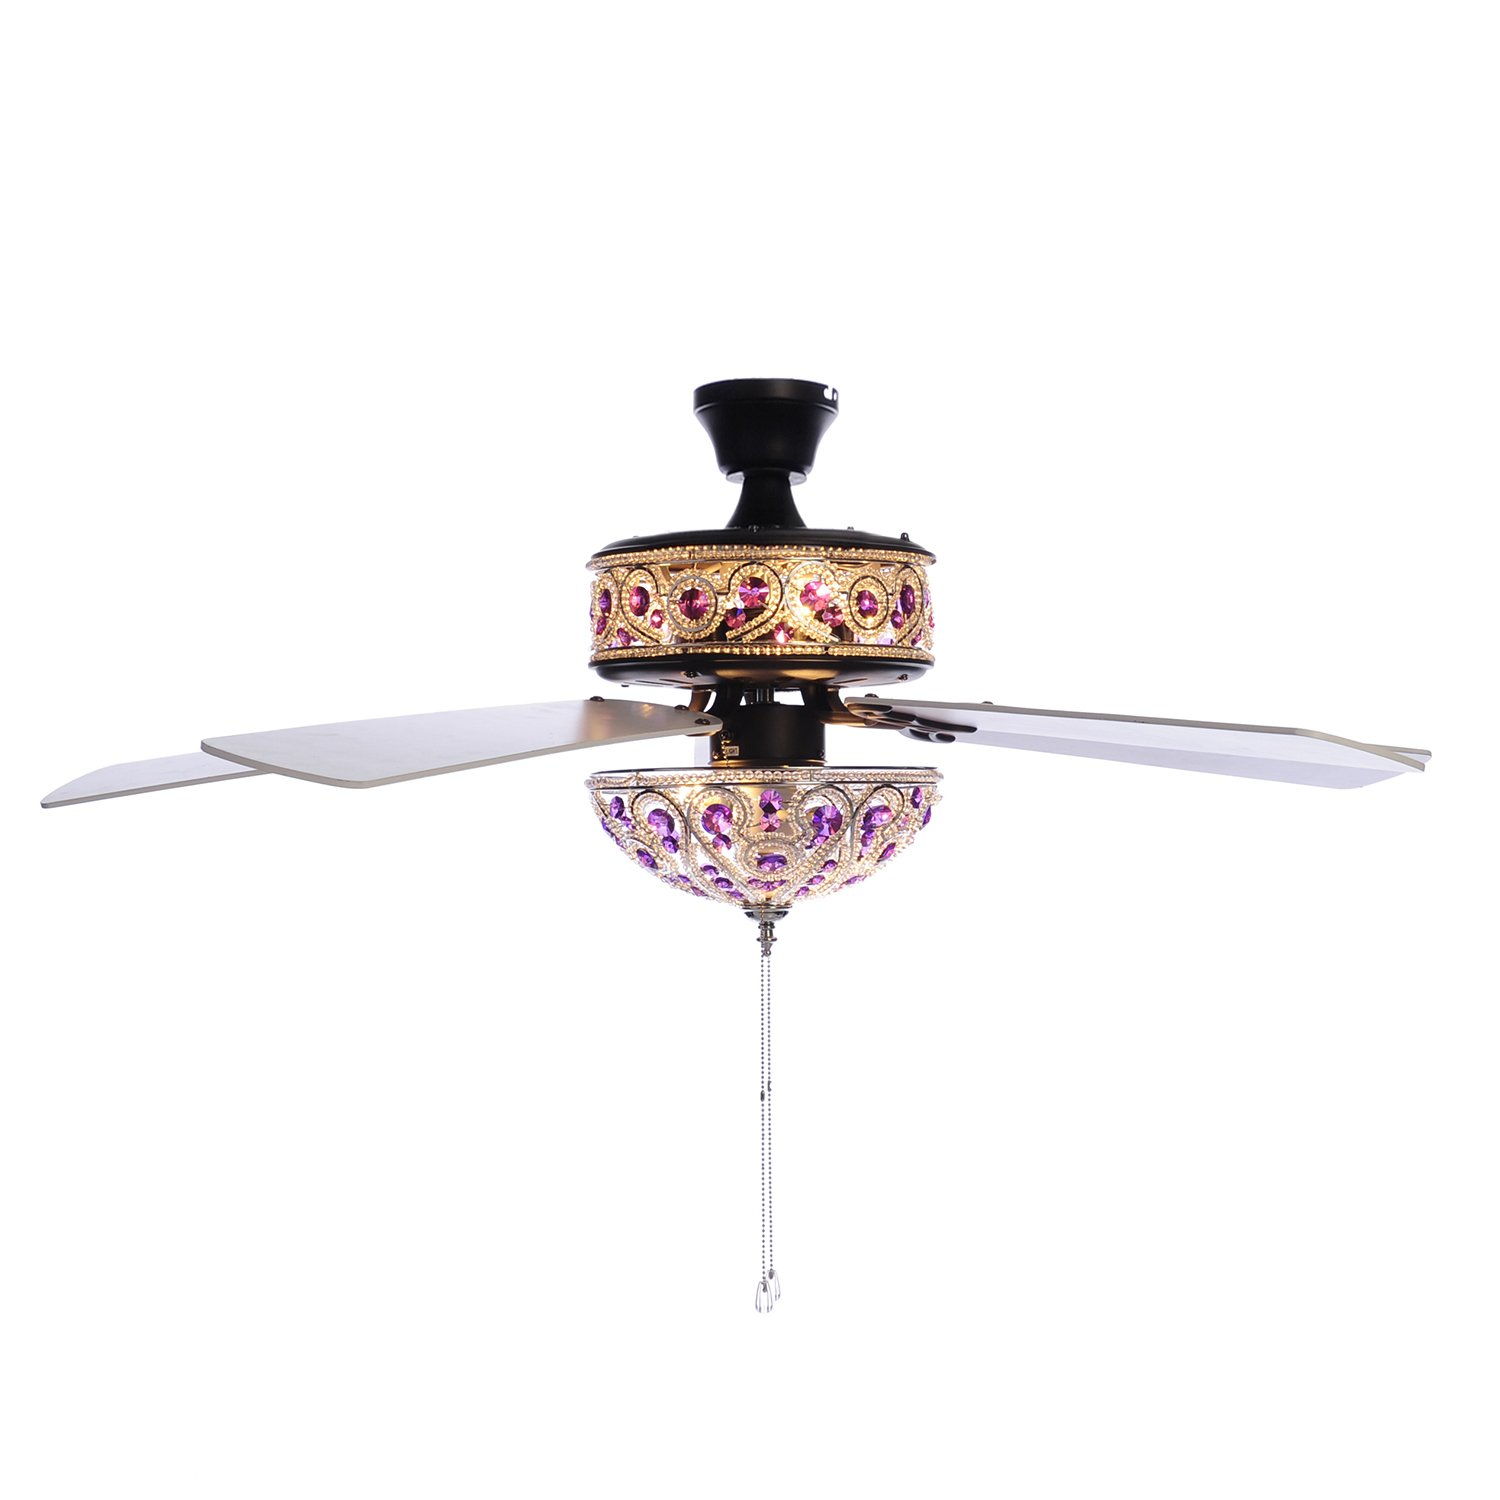 50'' Chandelier Crystal Ceiling Fan with Remote Control - Purple